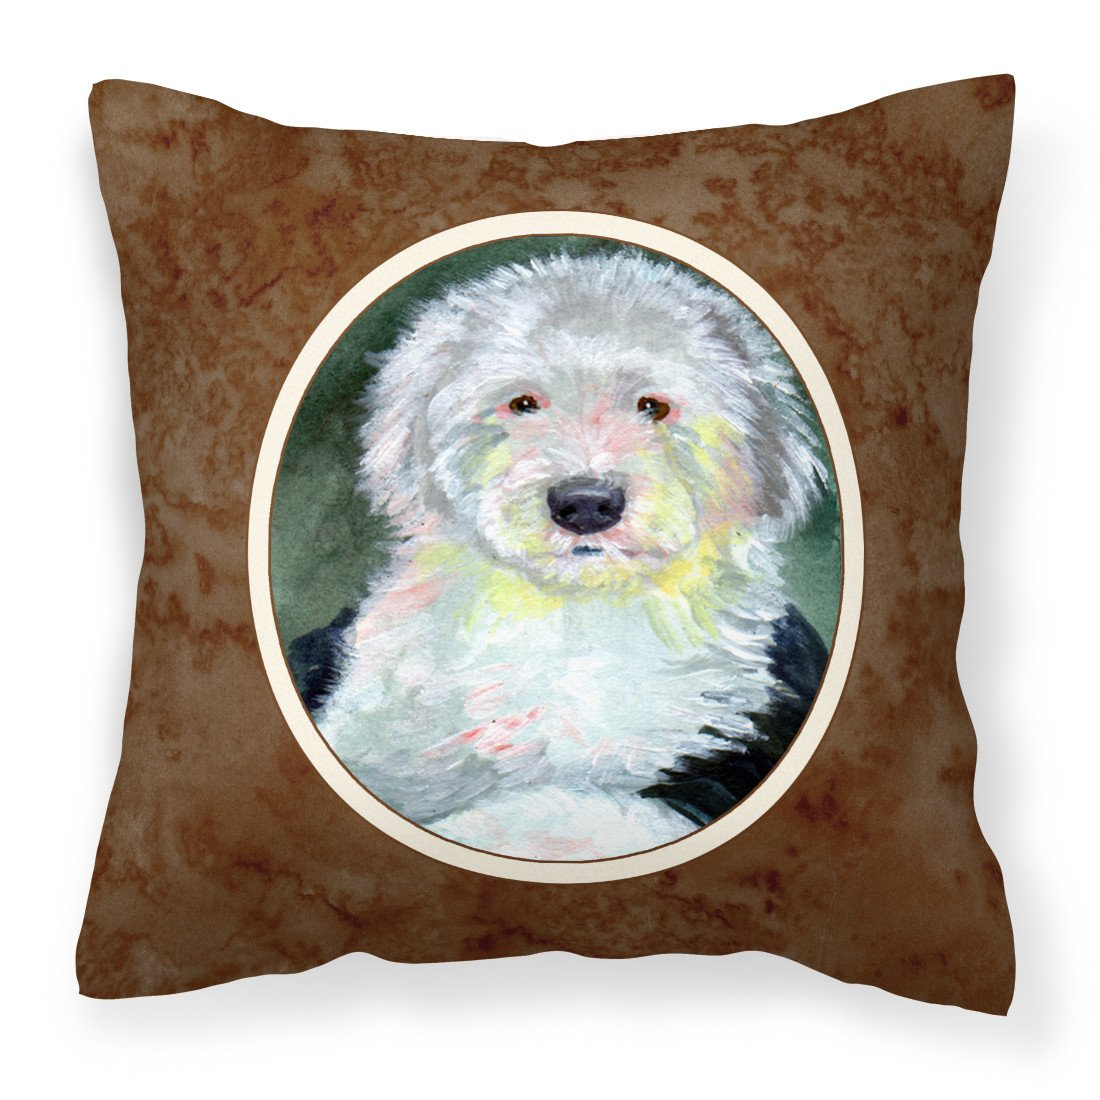 Old English Sheepdog Fabric Decorative Pillow 7252PW1414 by Caroline's Treasures